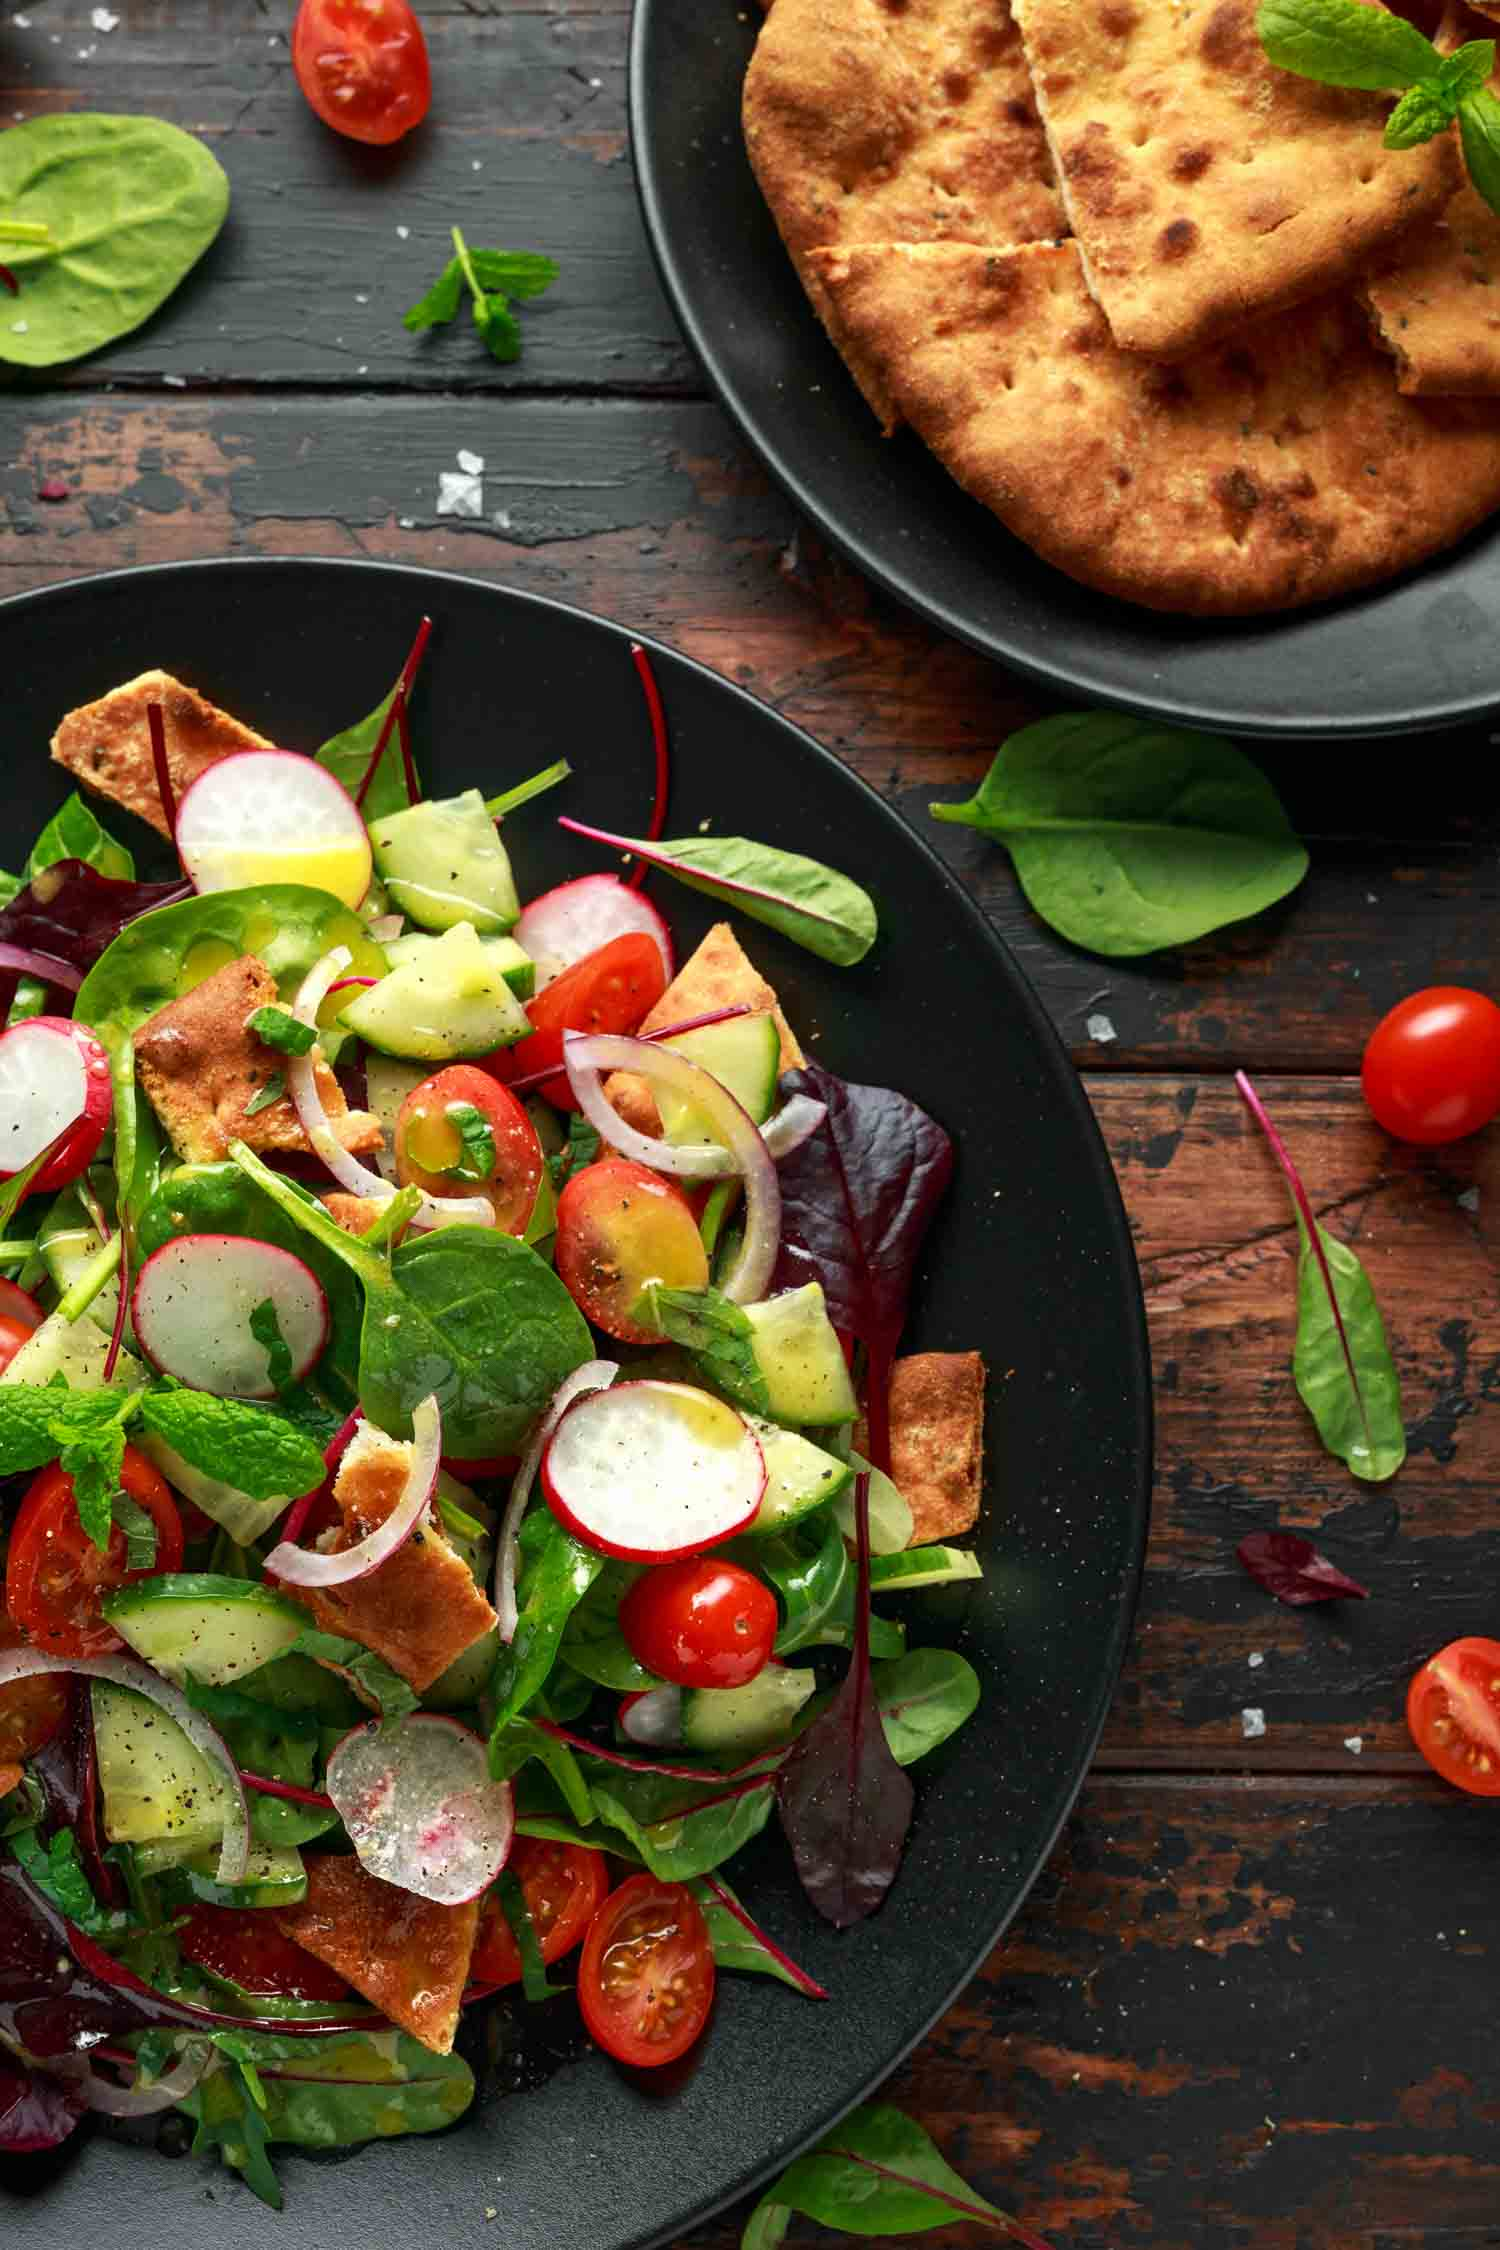 Traditional cuisine in Jordan fattoush salad on a plate with pita croutons, cucumber, tomato, red onion, vegetables mix and herbs